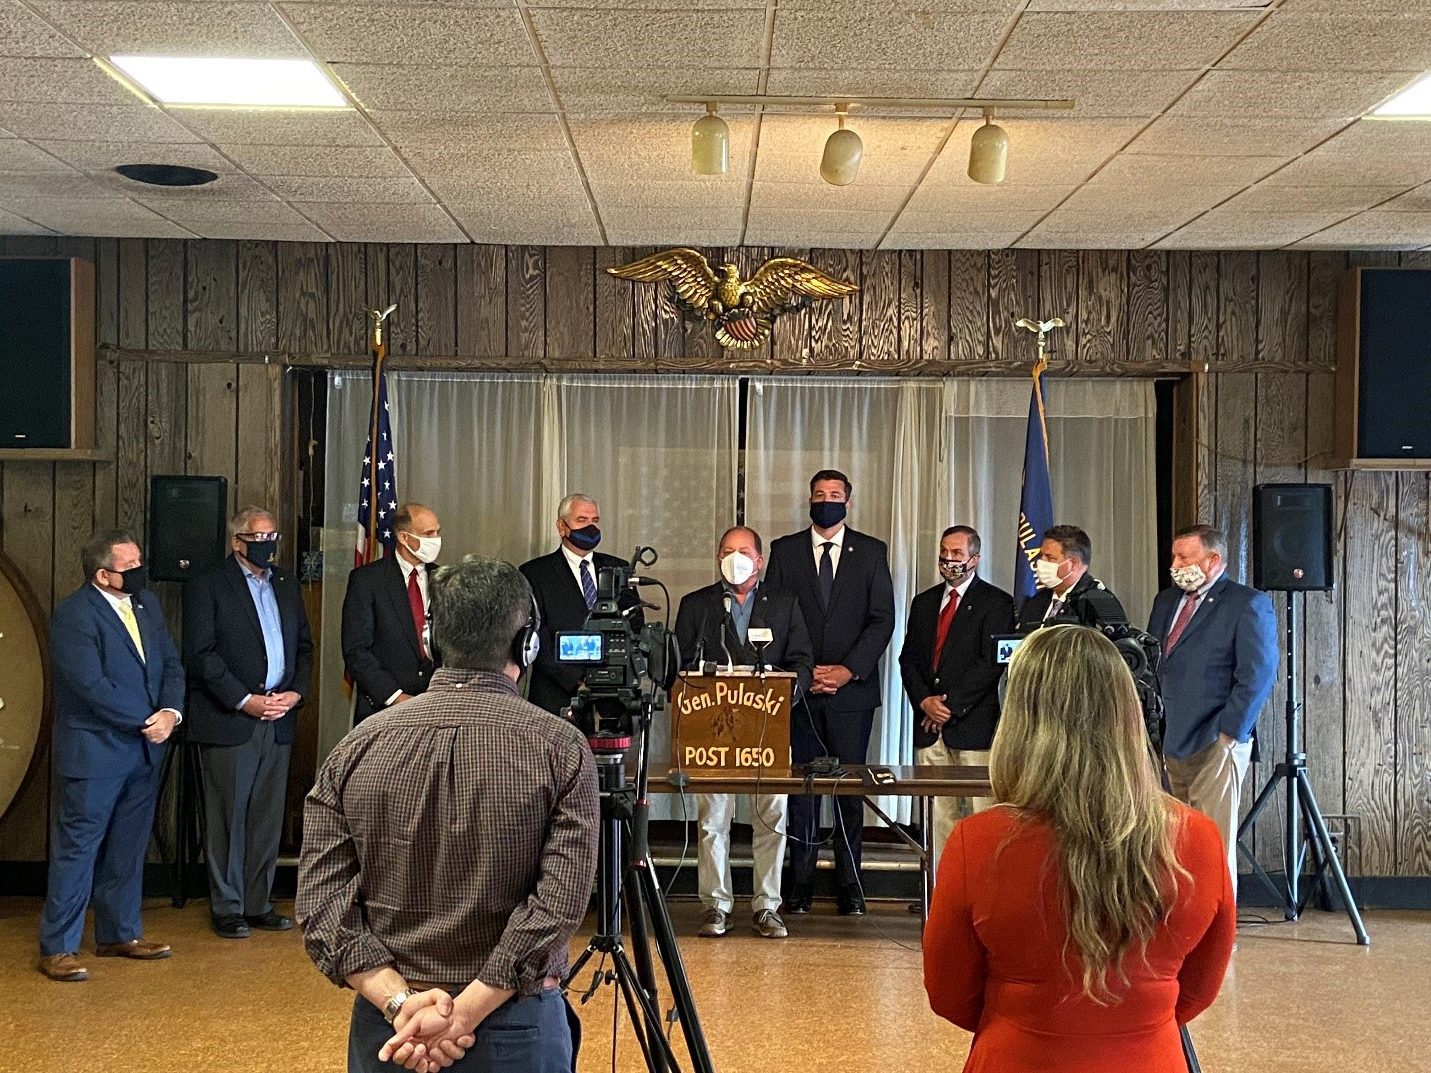 Assemblyman Steve Hawley (R,C,I-Batavia) (center) joins veterans and his Assembly Minority Colleagues who have also served in the military to urge for a focus on passing legislation to help veterans.